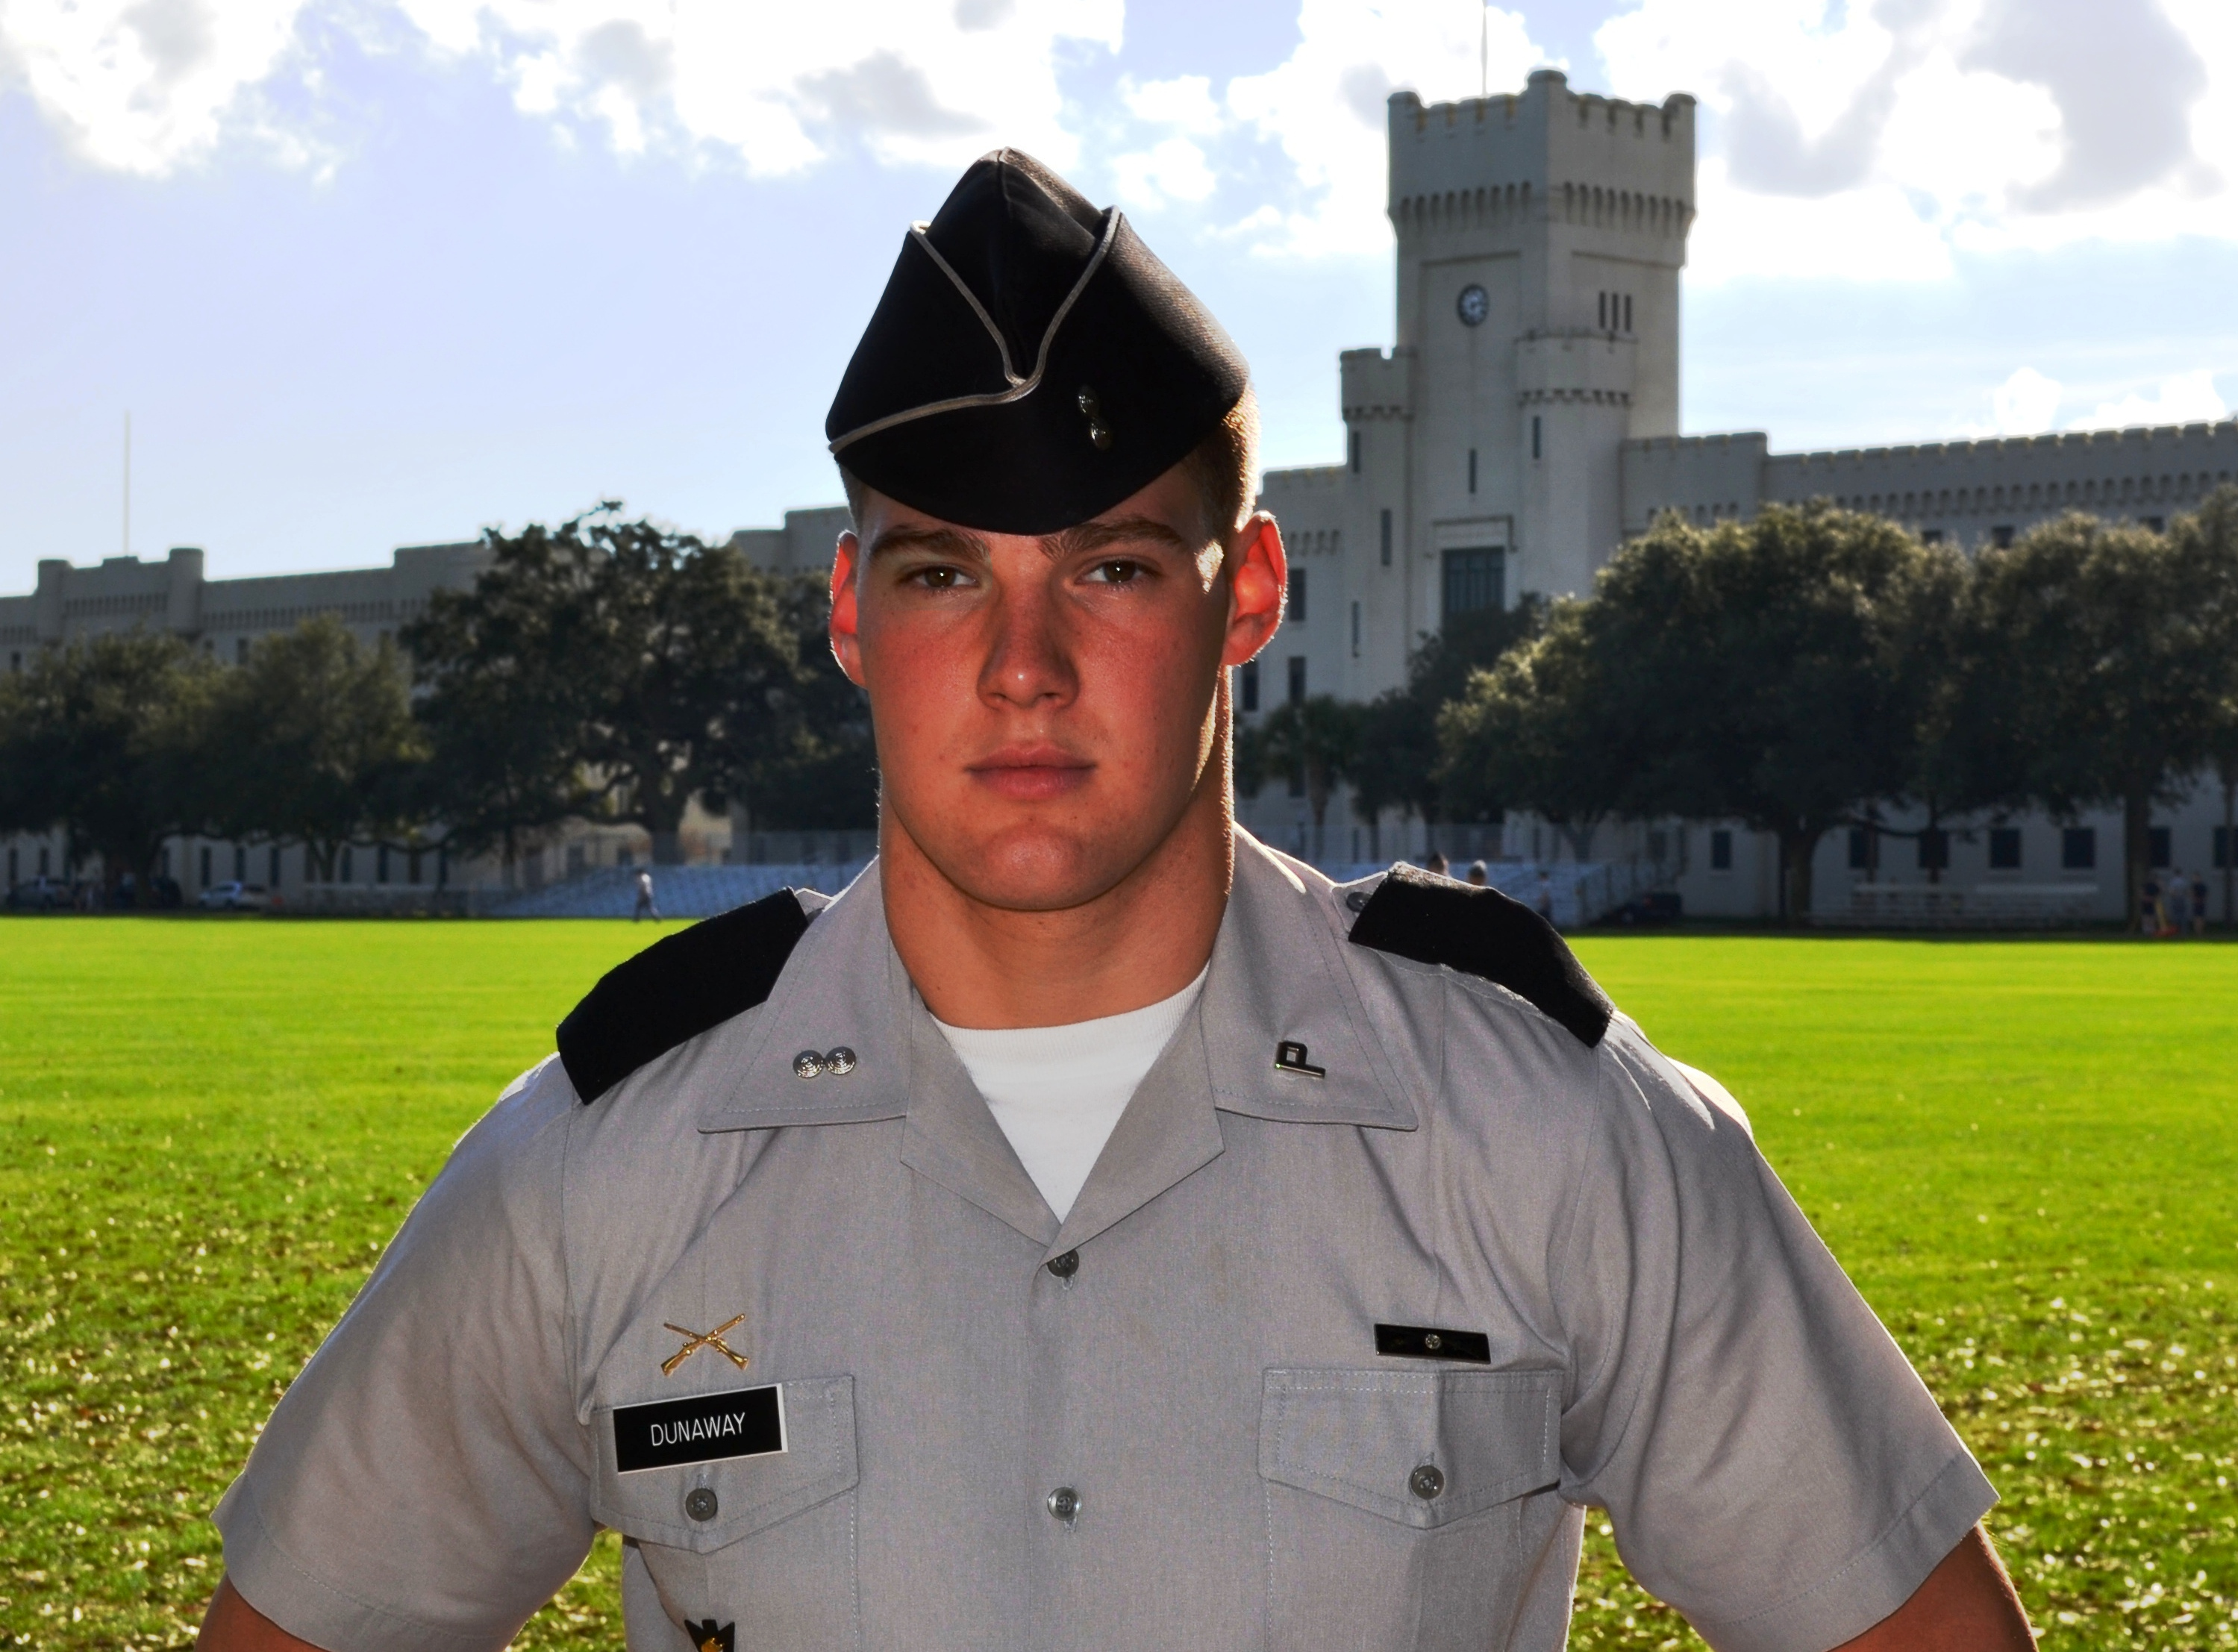 photo- cdt dunaway lewis3 2